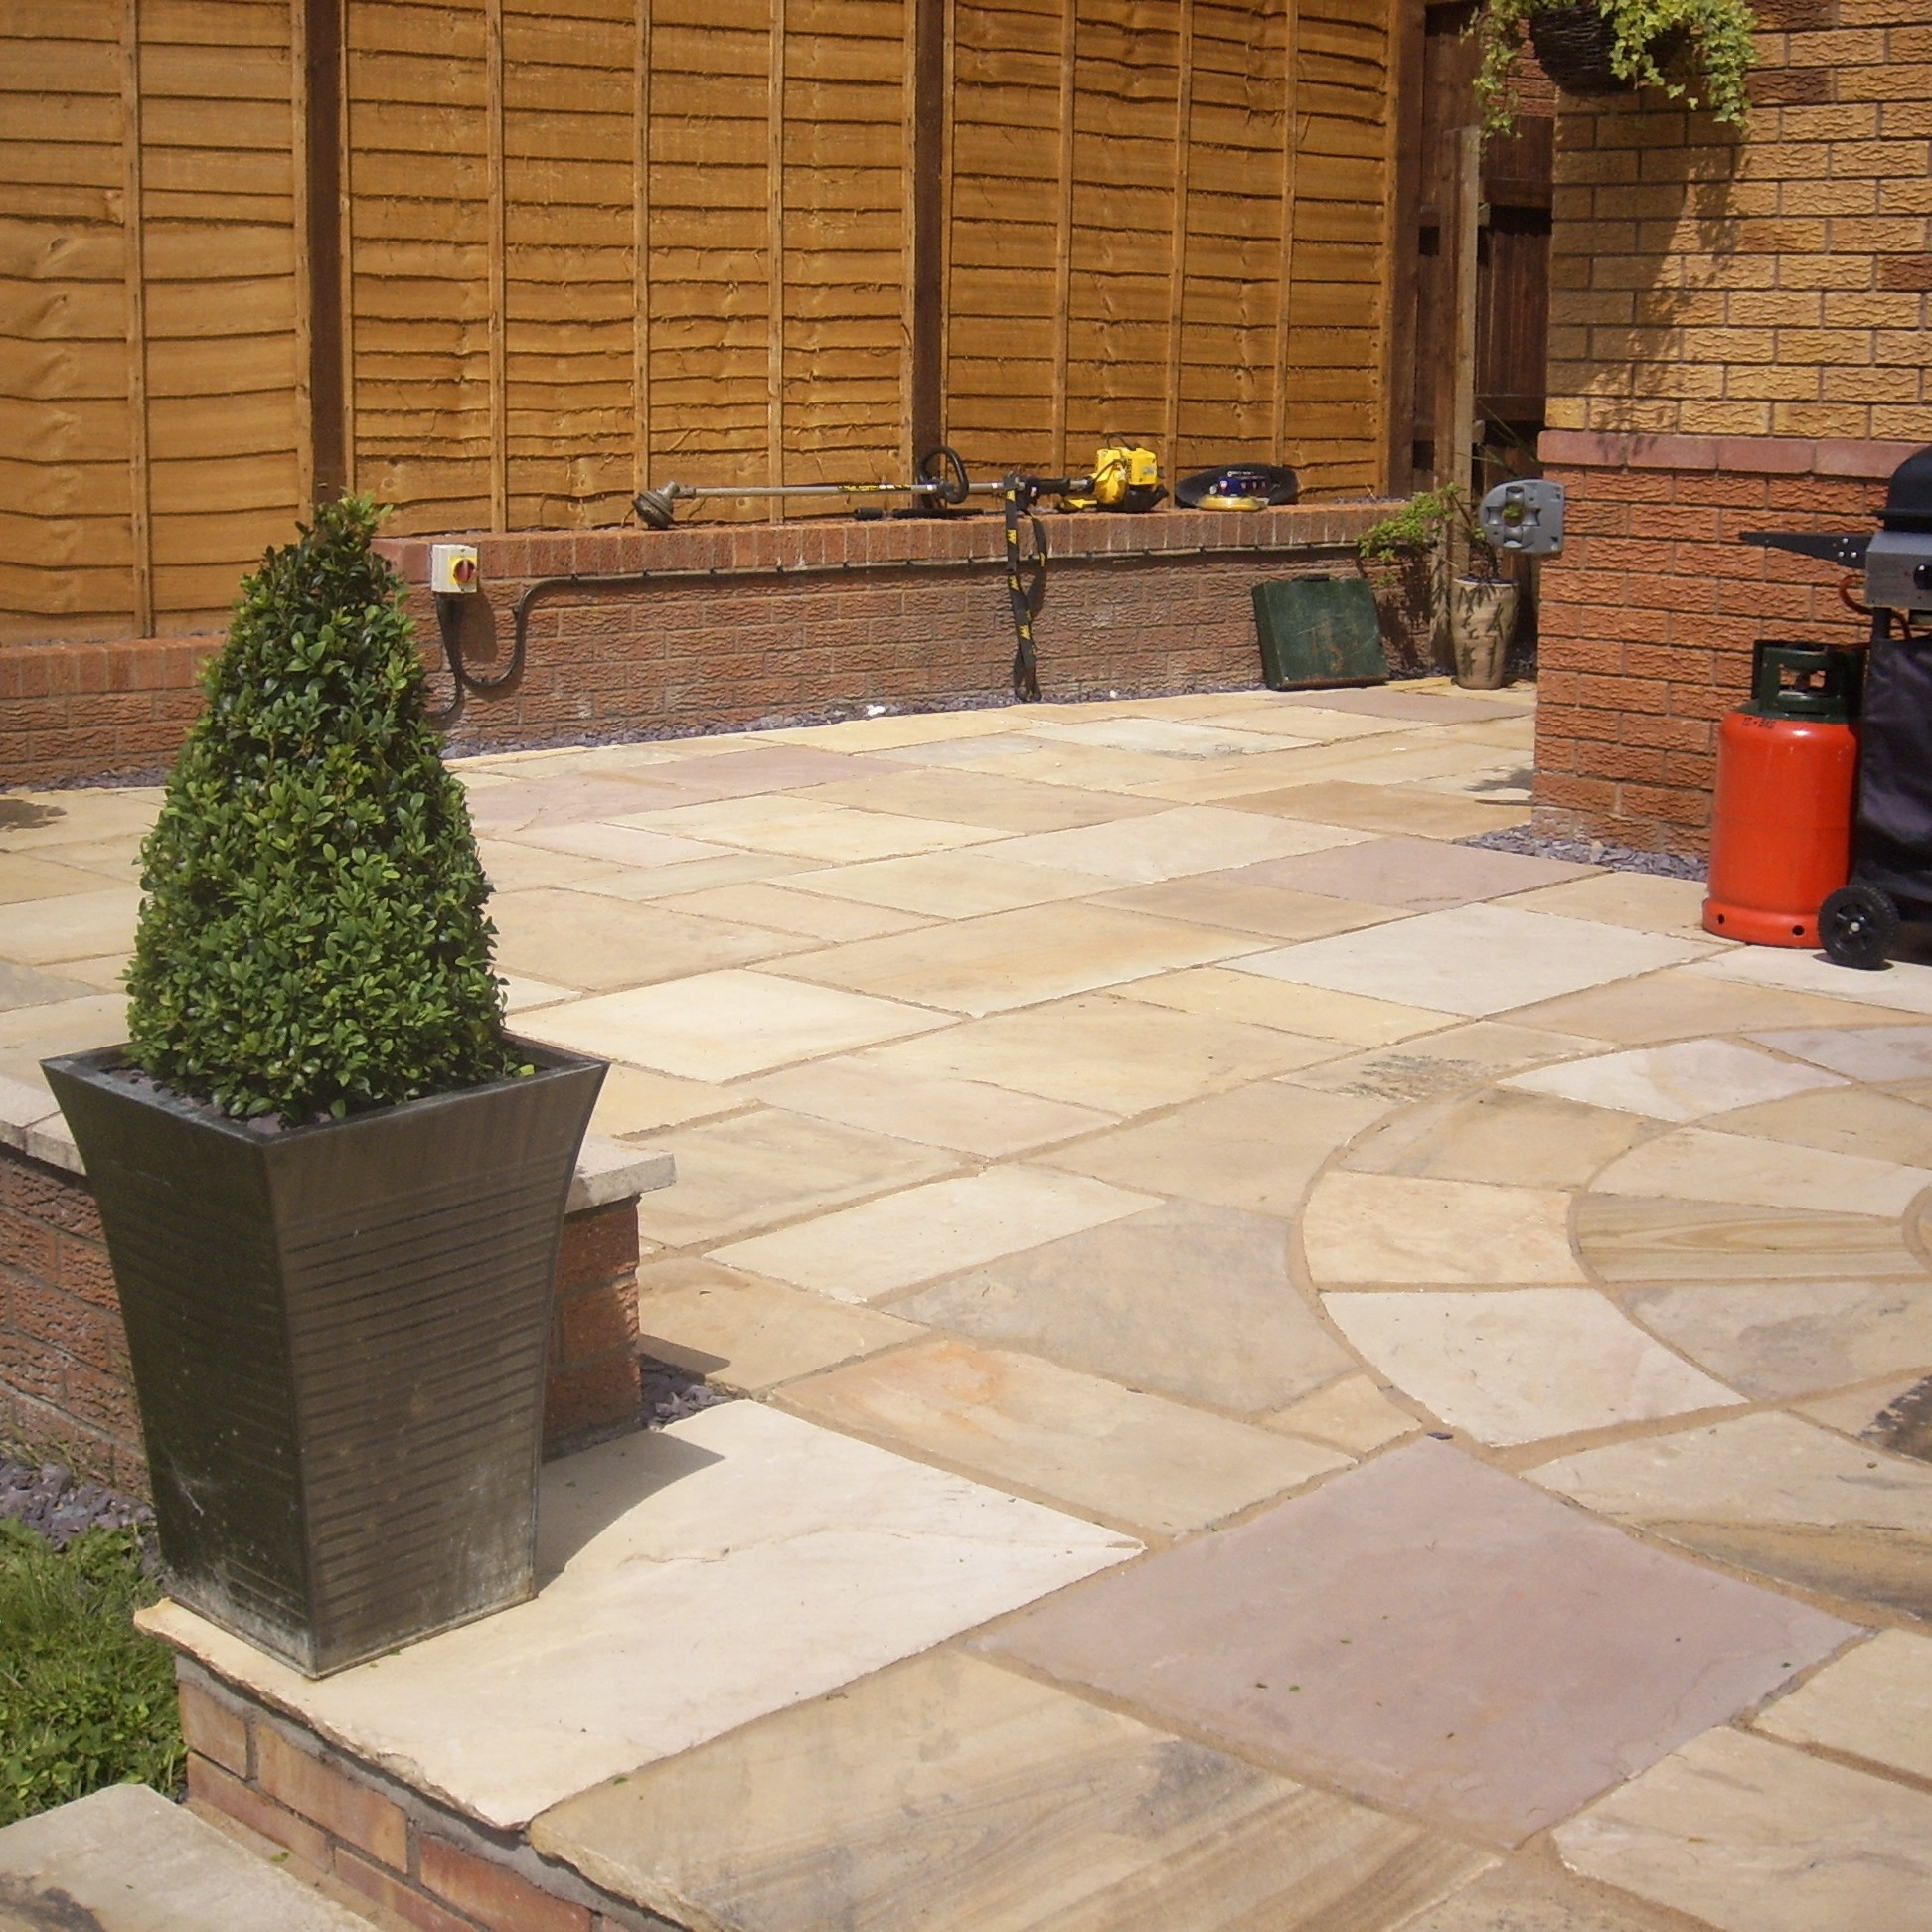 Fossil Mint Indian Sandstone Natural 22mm Calibrated Patio Paving Slabs Pack 15.5m2